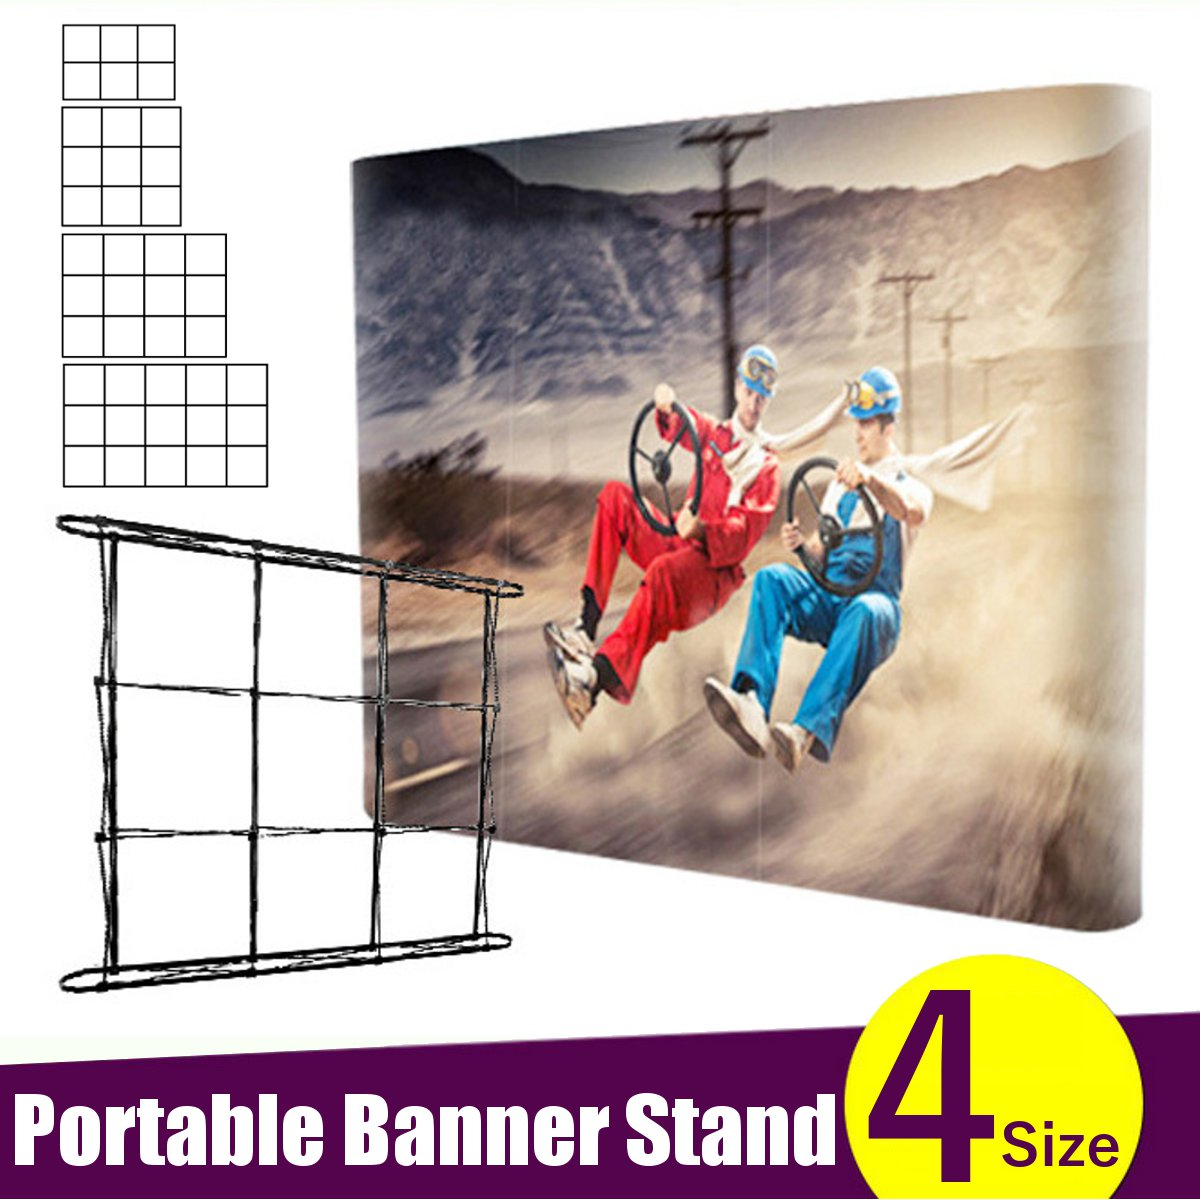 Folding 4 Sizes Portable Banner Stand Wedding Party Wall Frame Backdrop Display Presentation Advertising Rack Stand Holder